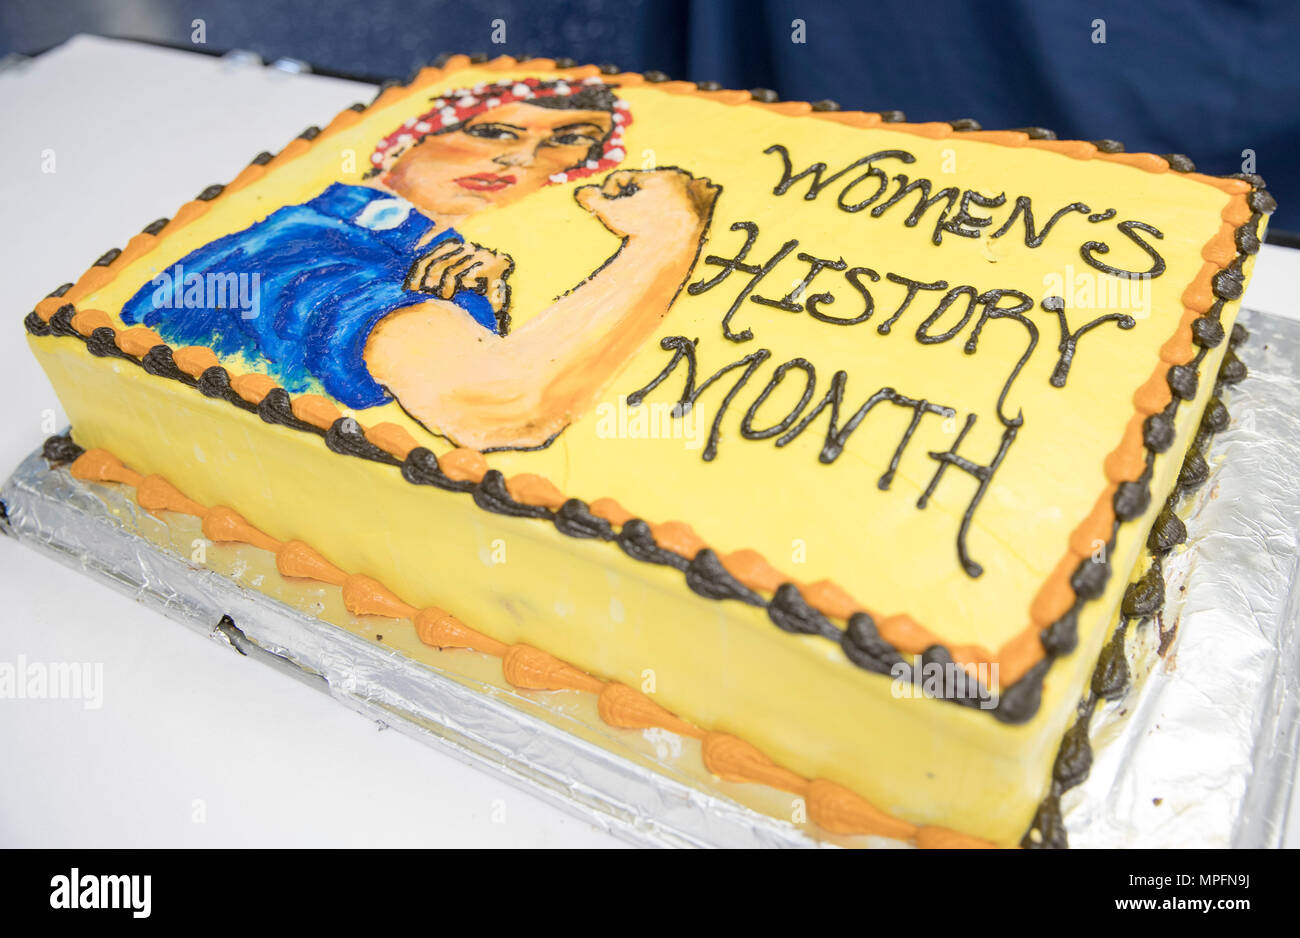 "170303-N-SA173-040  NEWPORT NEWS, Va. (March 3, 2017) A special ""Rosie the Riveter"" cake was created by the bakery shop aboard USS Abraham Lincoln (CVN 72) for the command's Women's History Month observance on the ship's mess deck. The event honored trailblazing Navy women such as Rear Adm. Grace Hopper, Capt. Sarah Joyner, and Chief Yeoman Loretta Walsh. (U.S. Navy Photo by Mass Communication Specialist 3rd Class Juan Cubano/Released) - Stock Image"